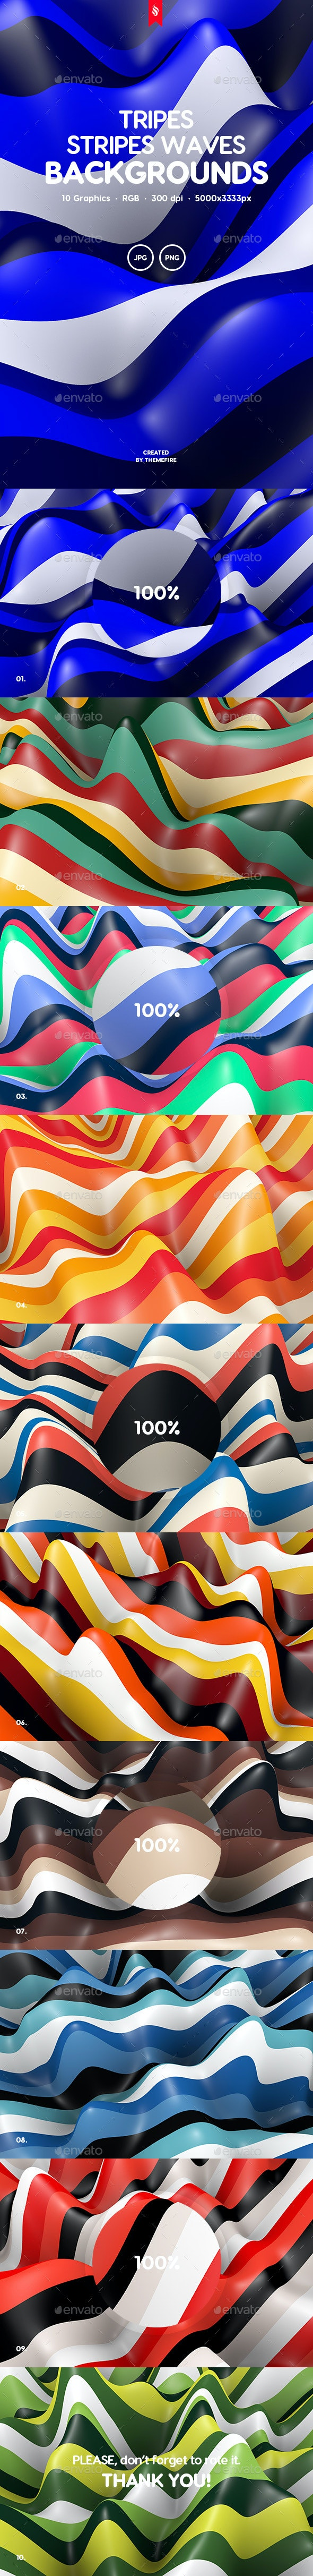 Tripes - Colored Stripes Waves Backgrounds - 3D Backgrounds